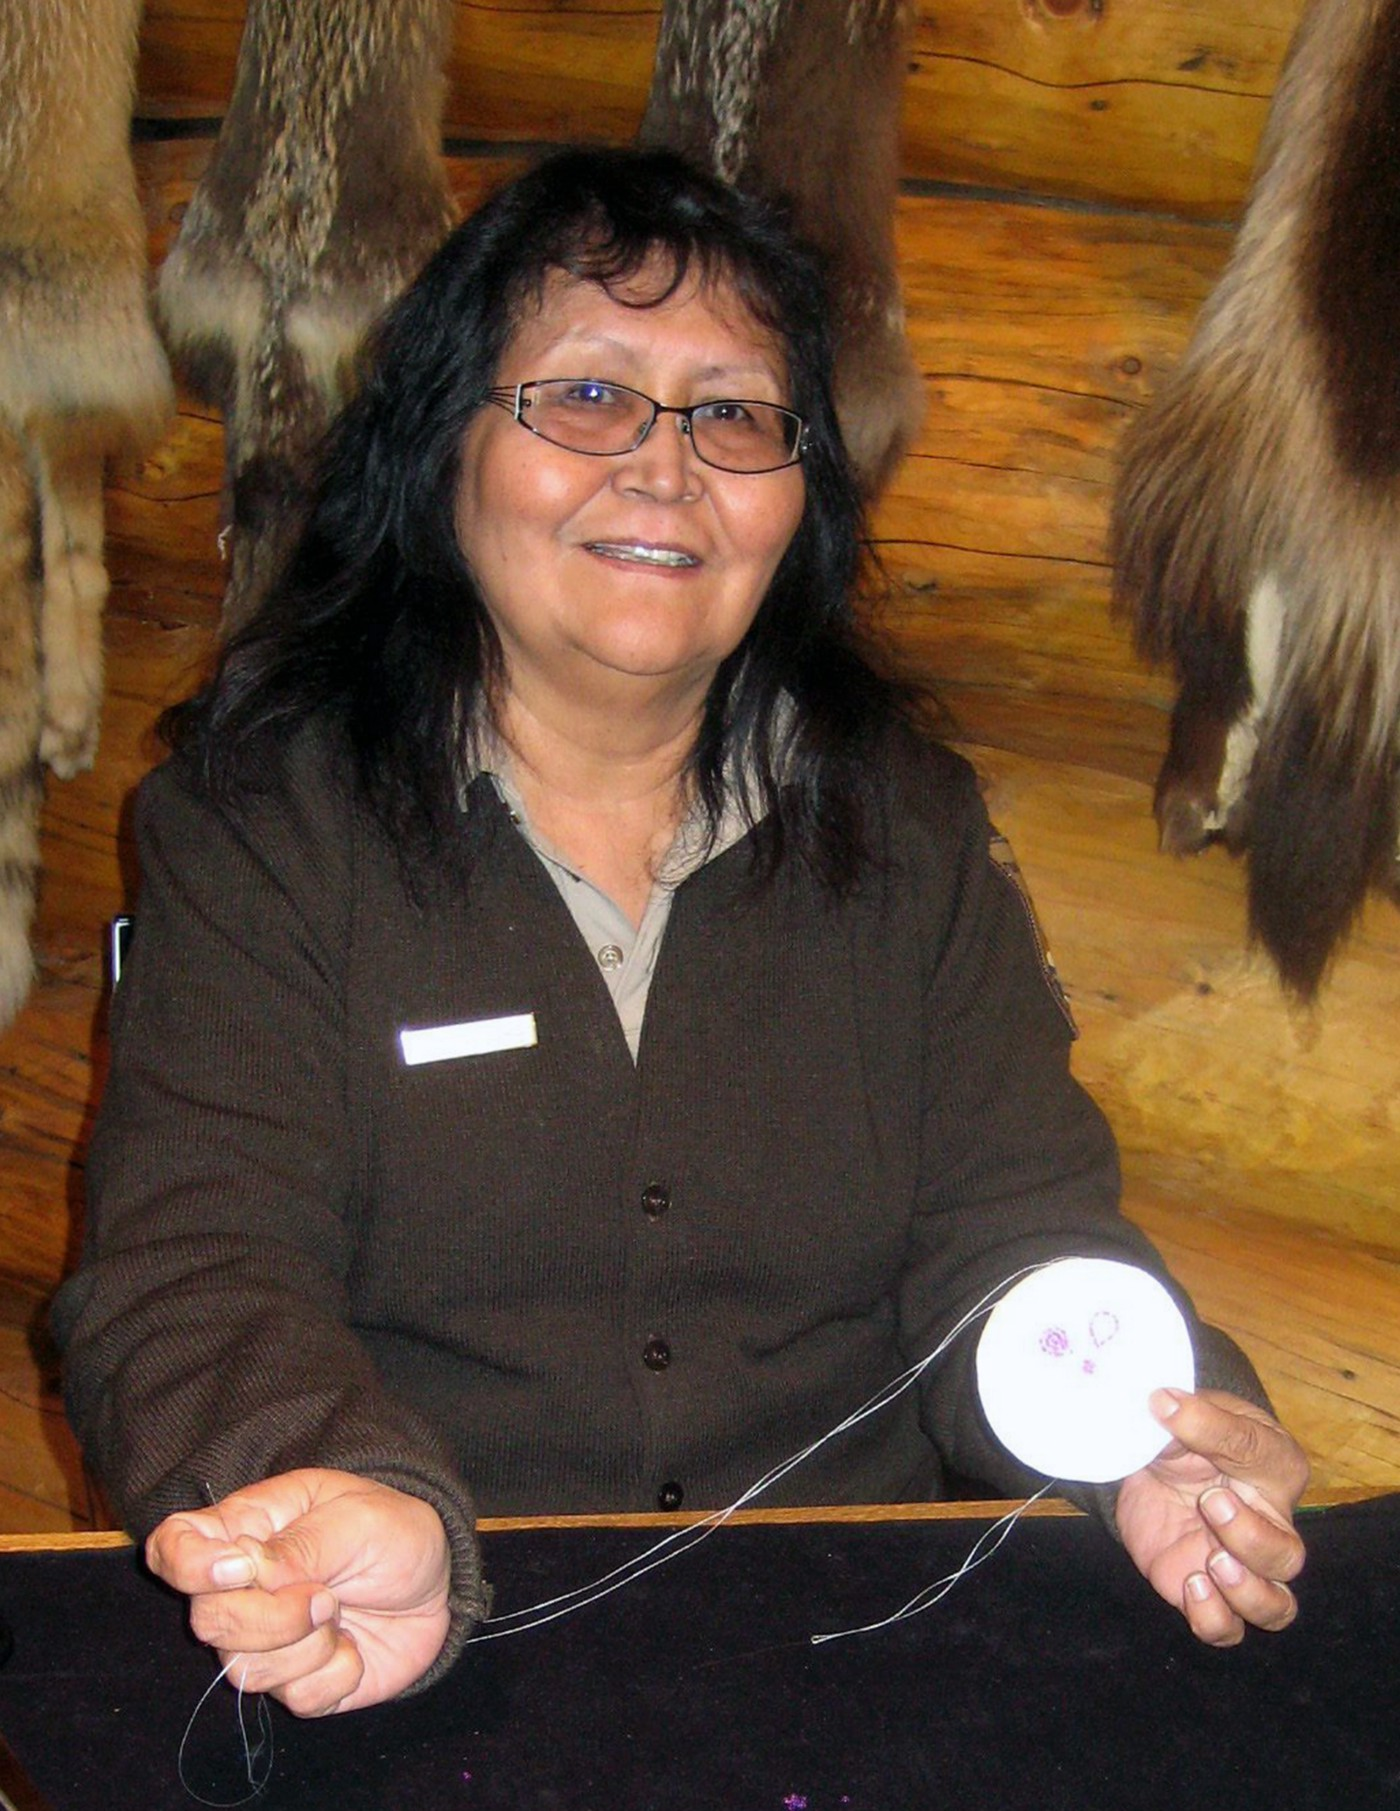 Sylvia in uniform inside the visitor center doing traditional crafts